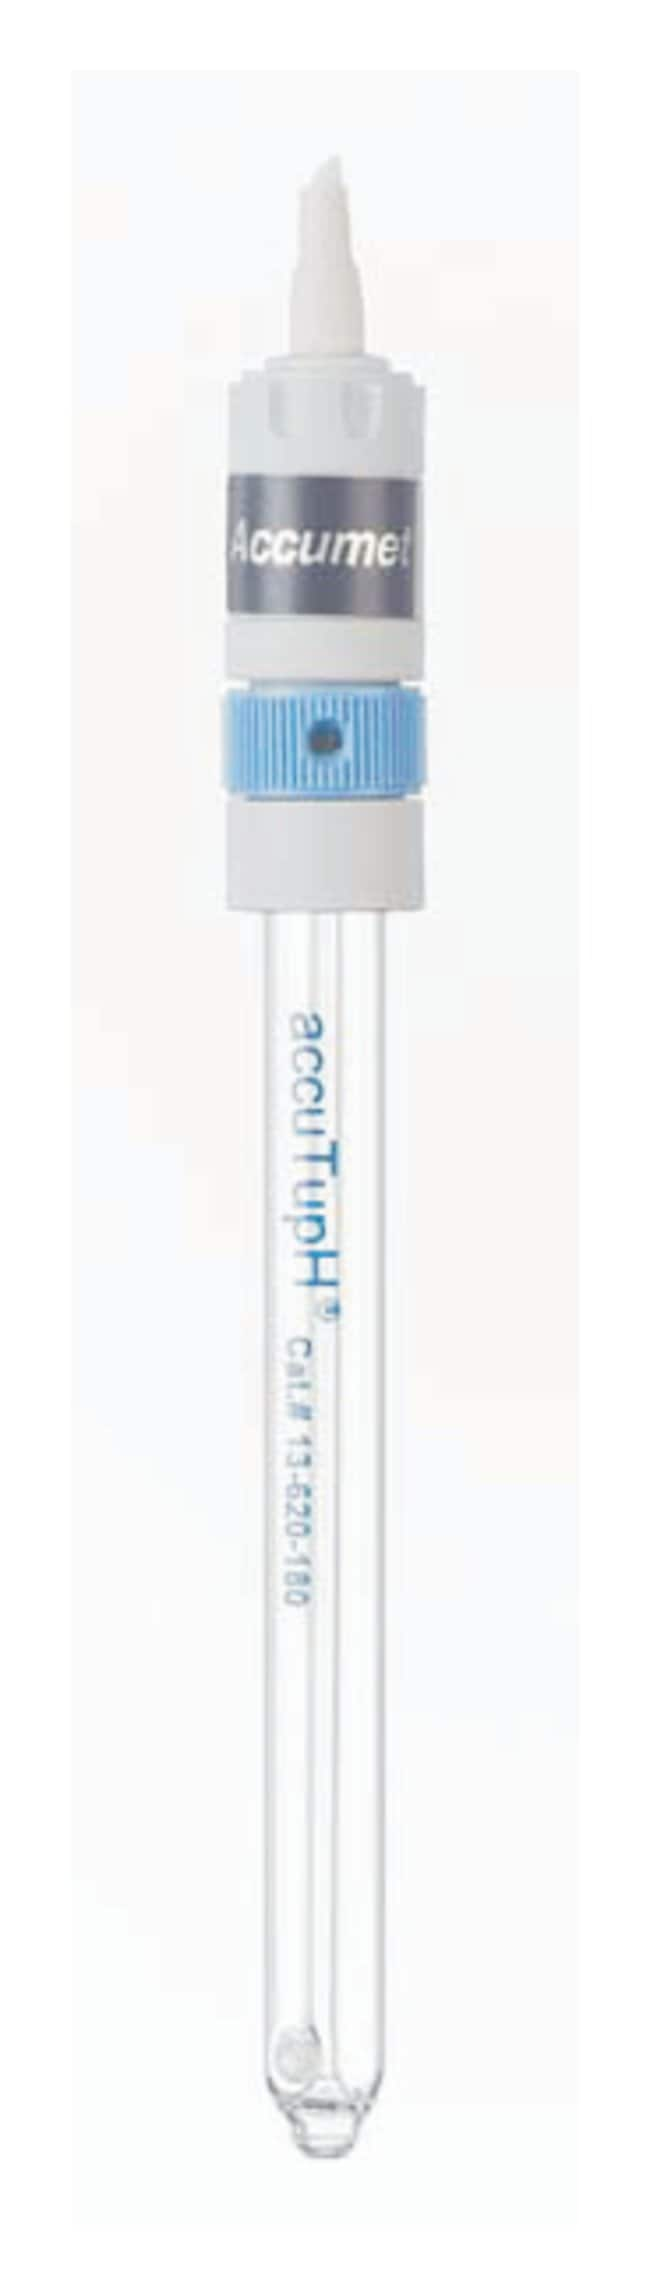 Fisherbrand accuTupH Rugged Bulb pH Combination Electrodes - Mercury-Free:Thermometers,